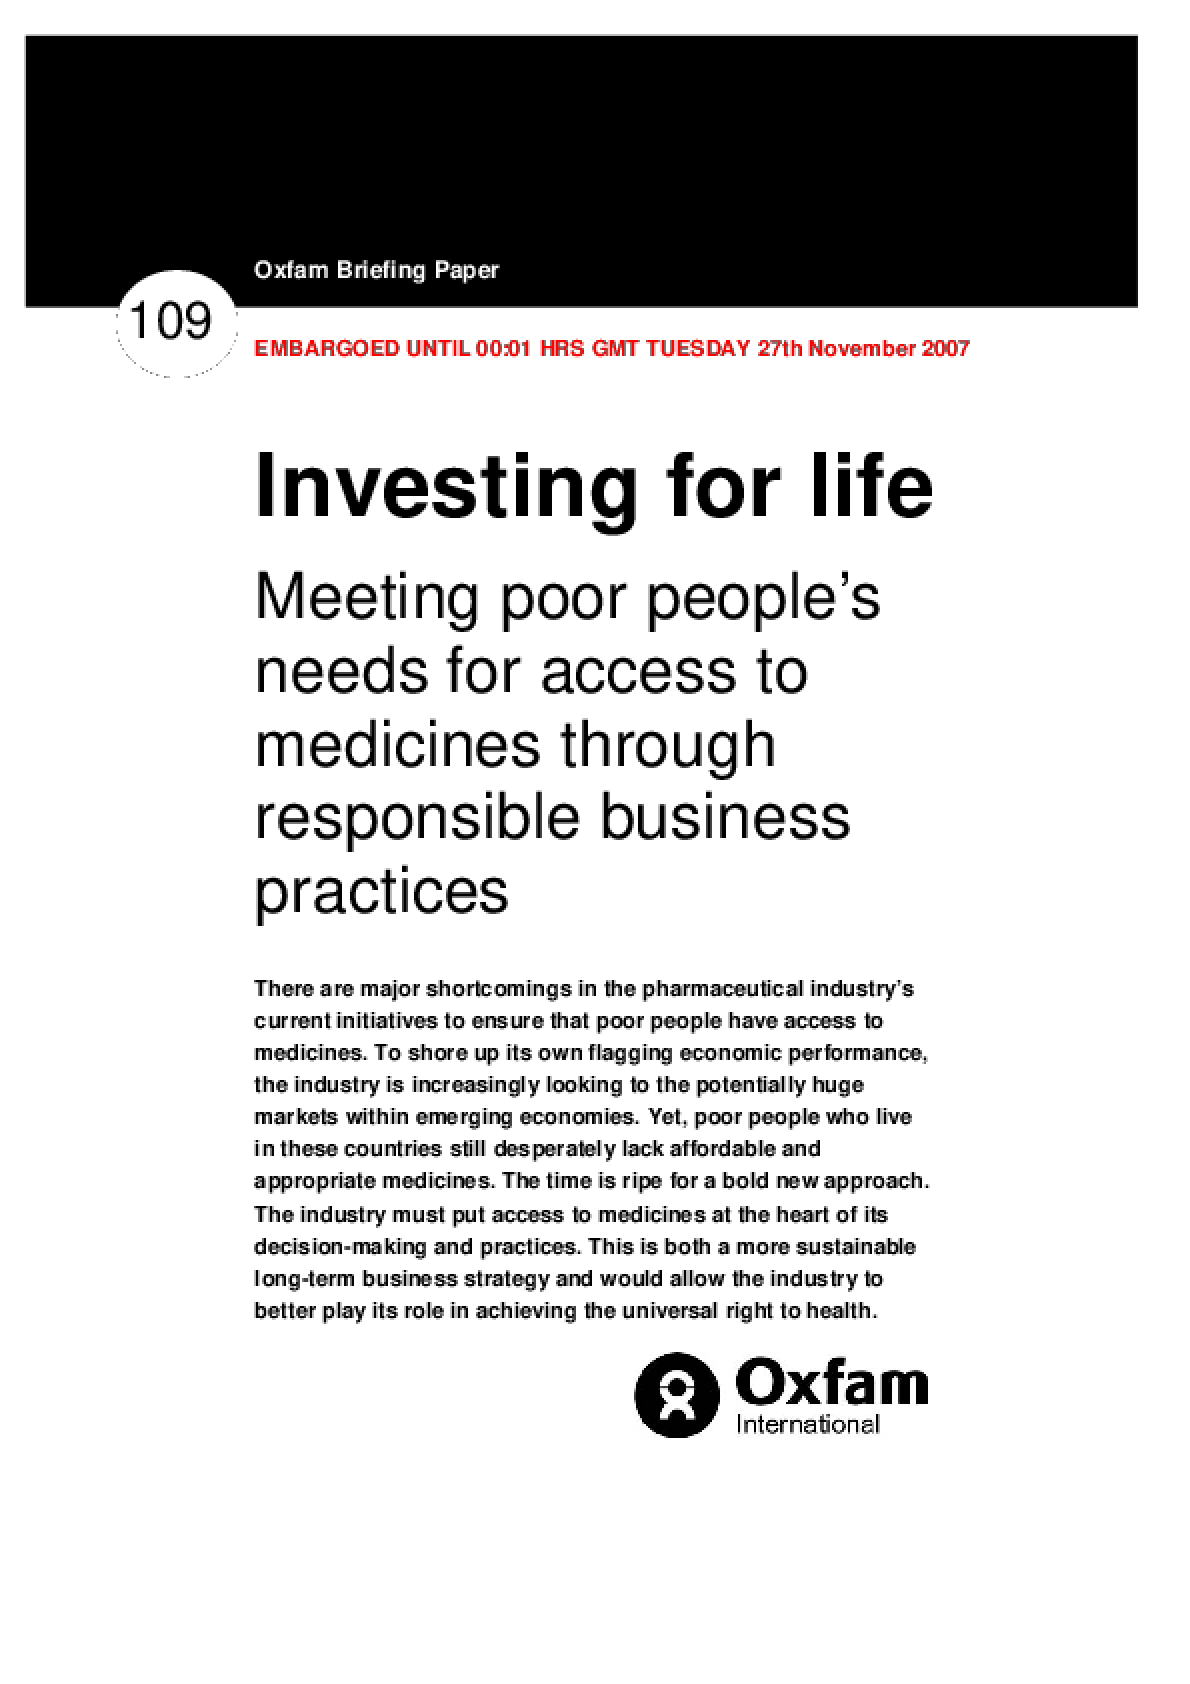 Investing For Life: Meeting poor people's needs for access to medicines through responsible business practices